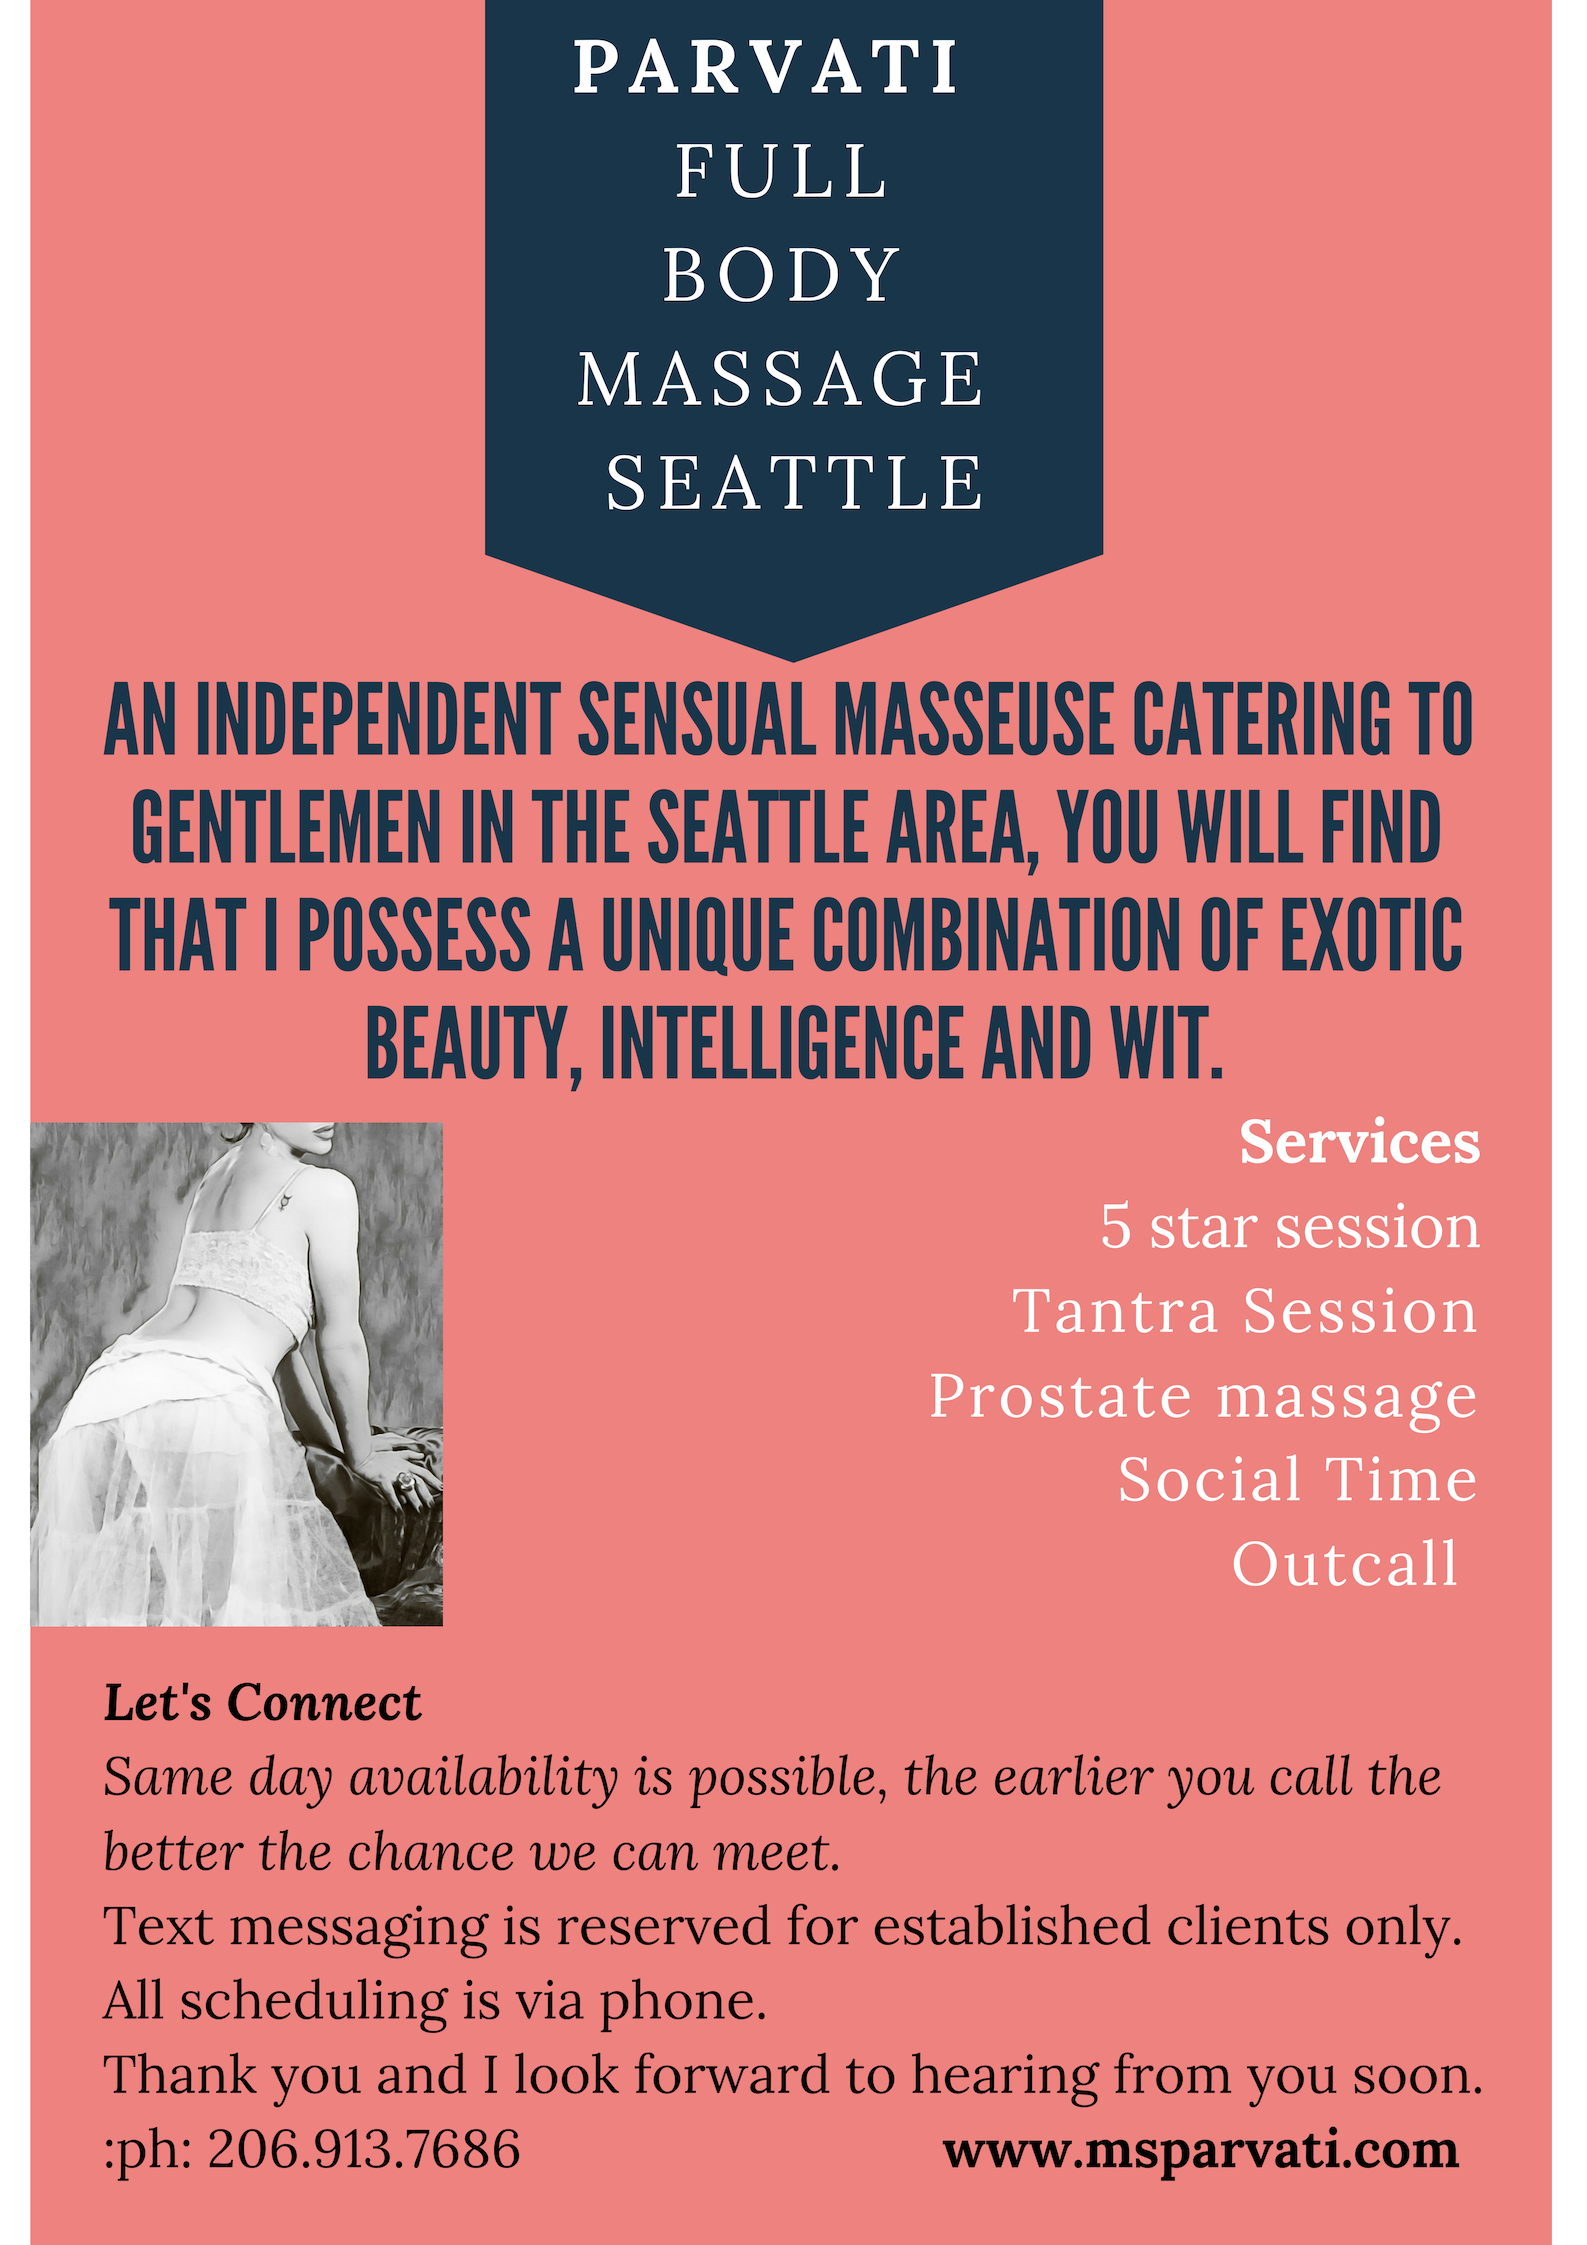 how to give a sensual body massage